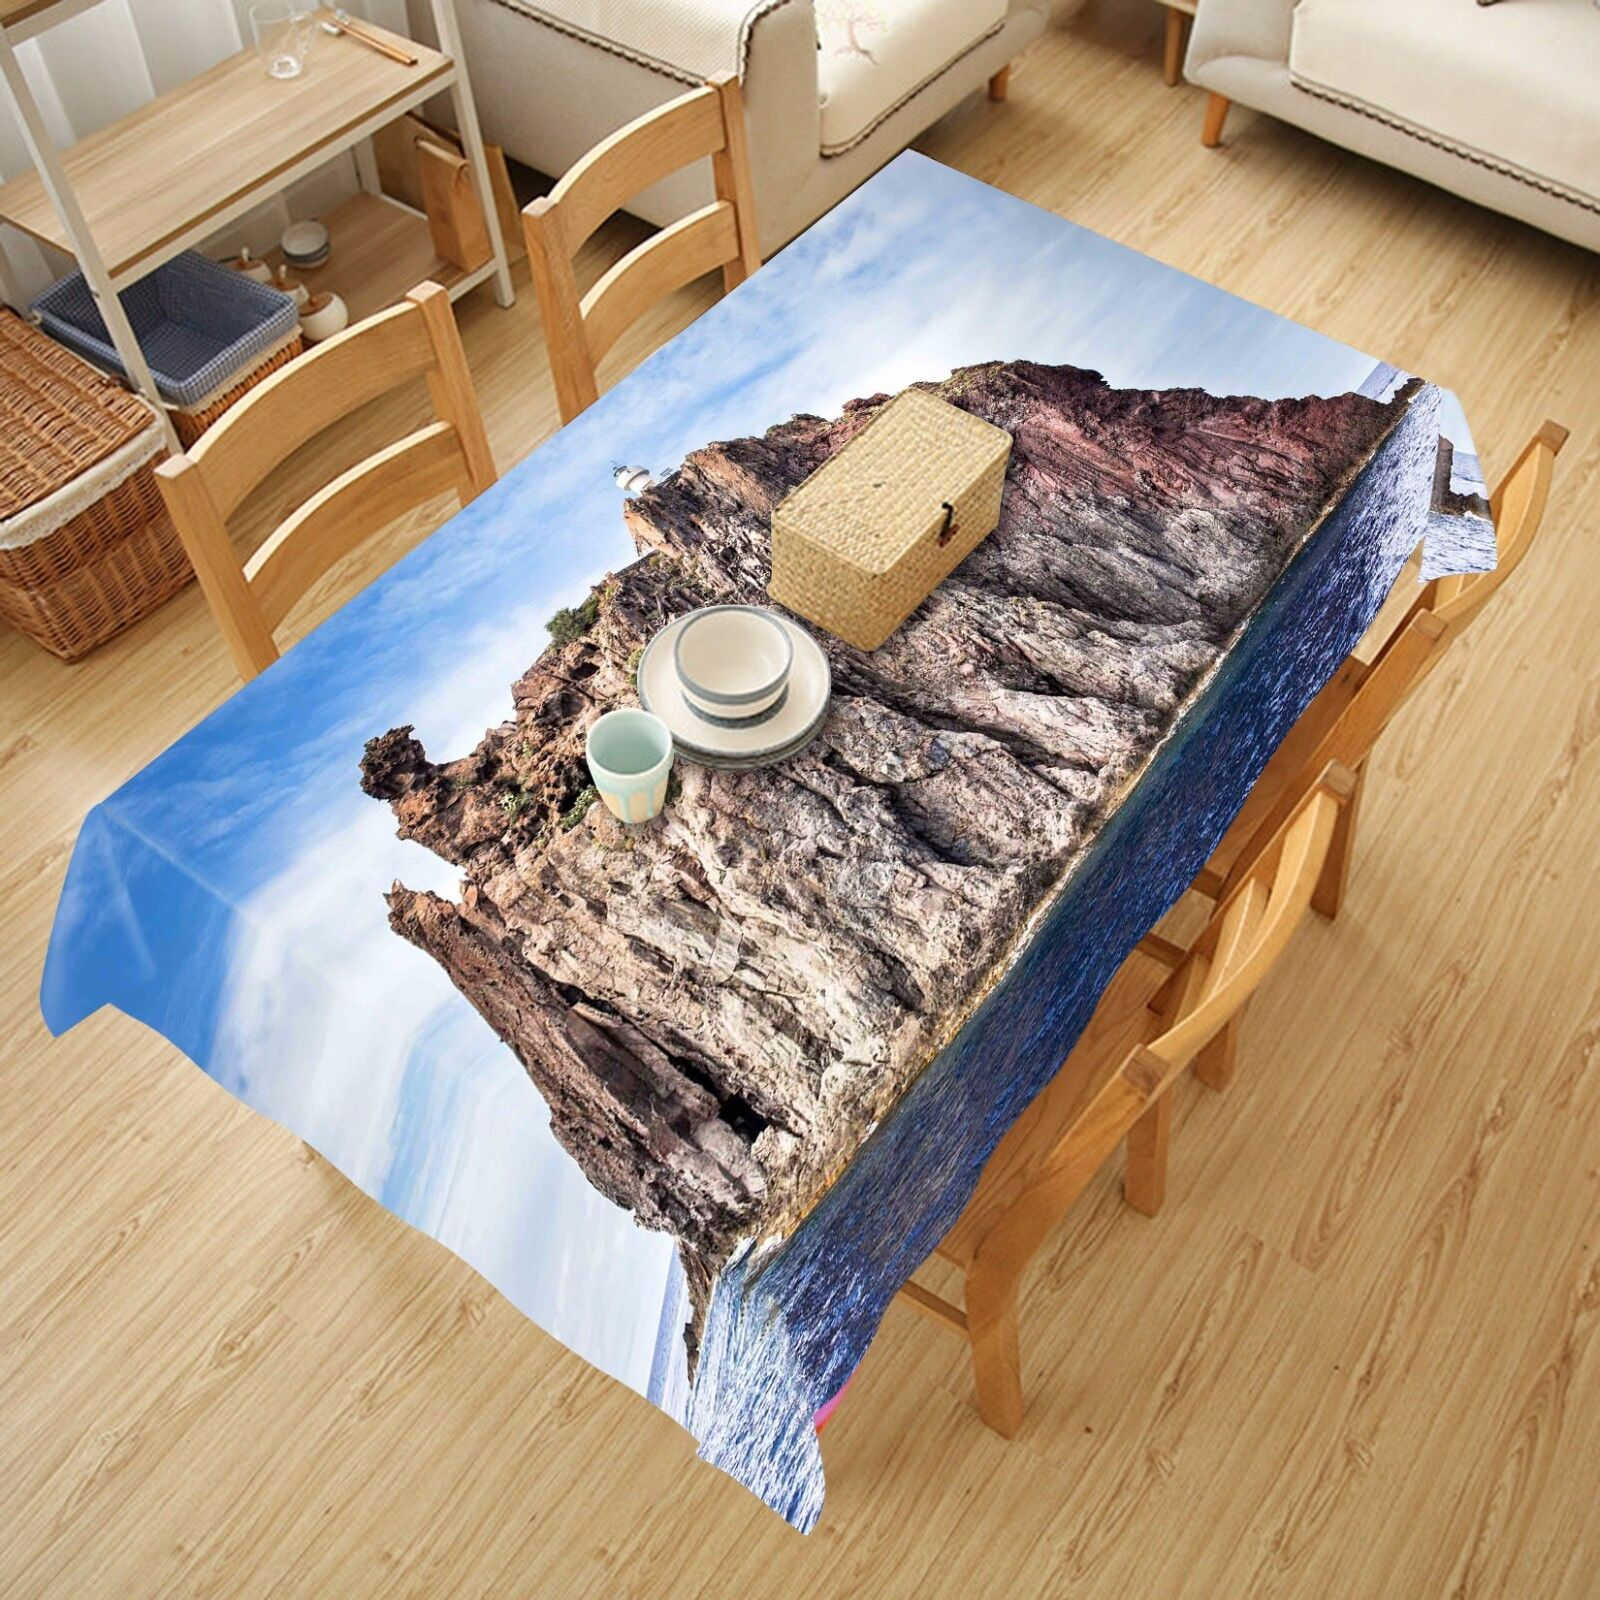 3D Islets 4978 Tablecloth Table Cover Cloth Birthday Party Event AJ WALLPAPER AU